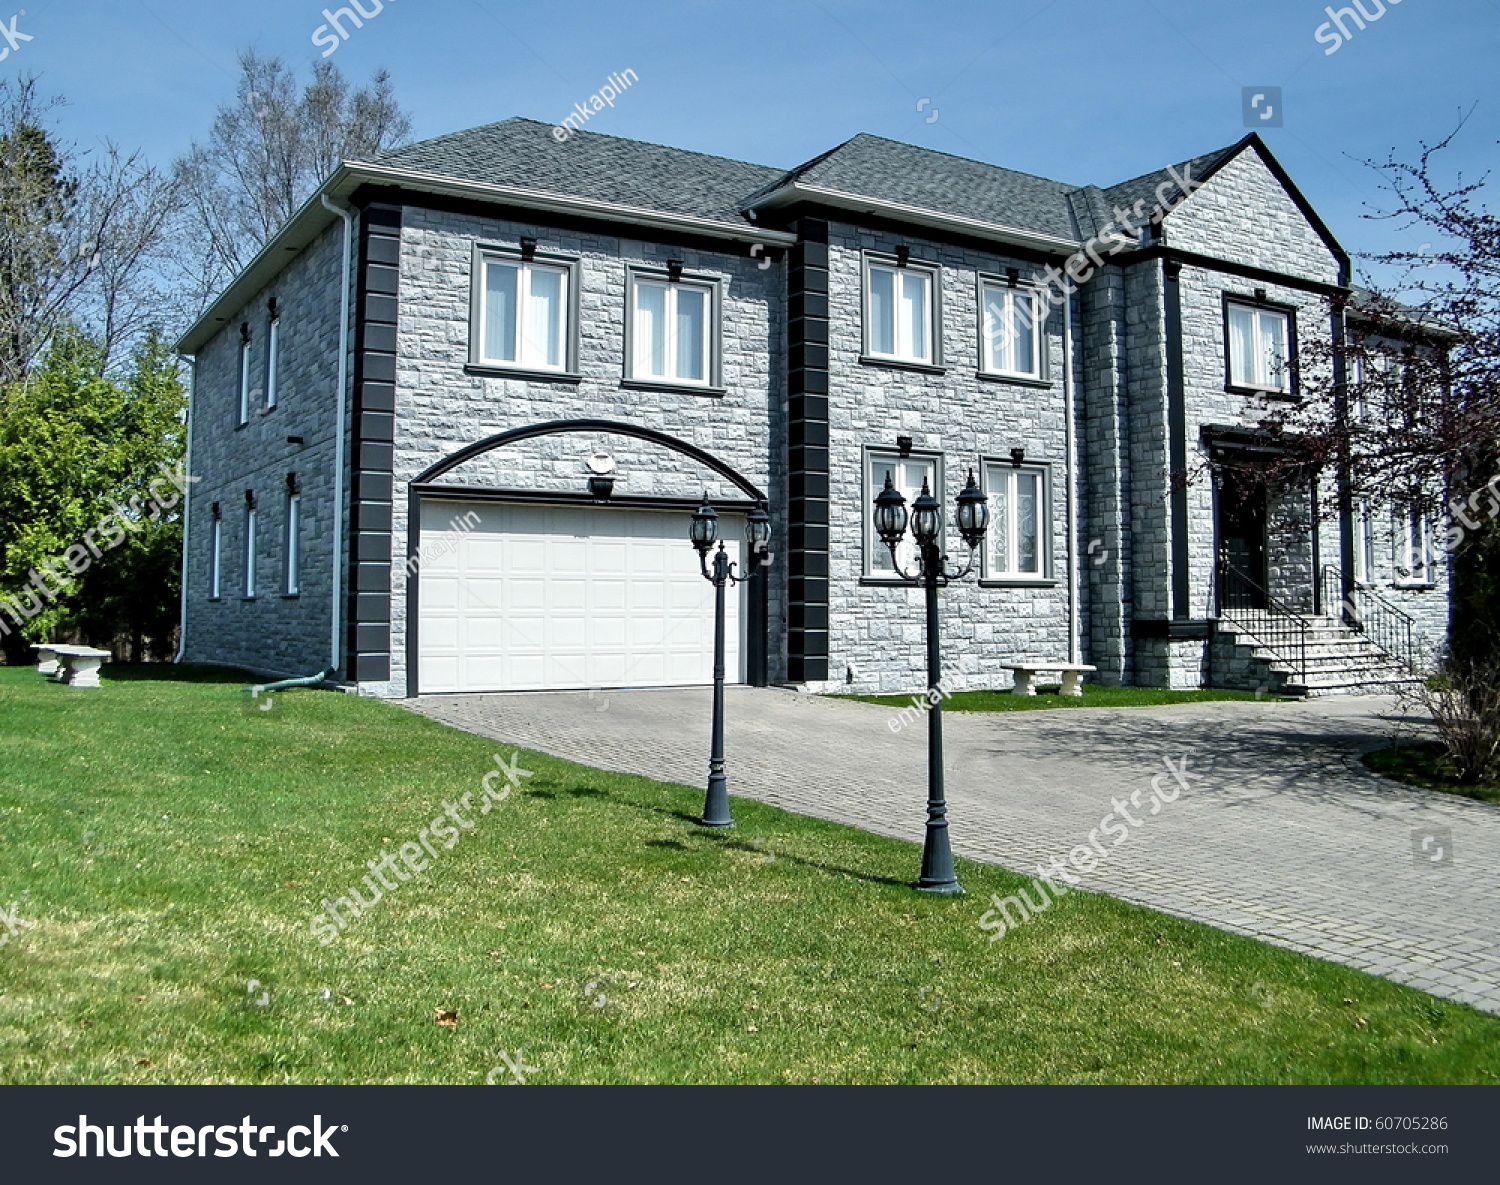 Very nice grey house in thornhill canada stock photo for Nice houses in canada